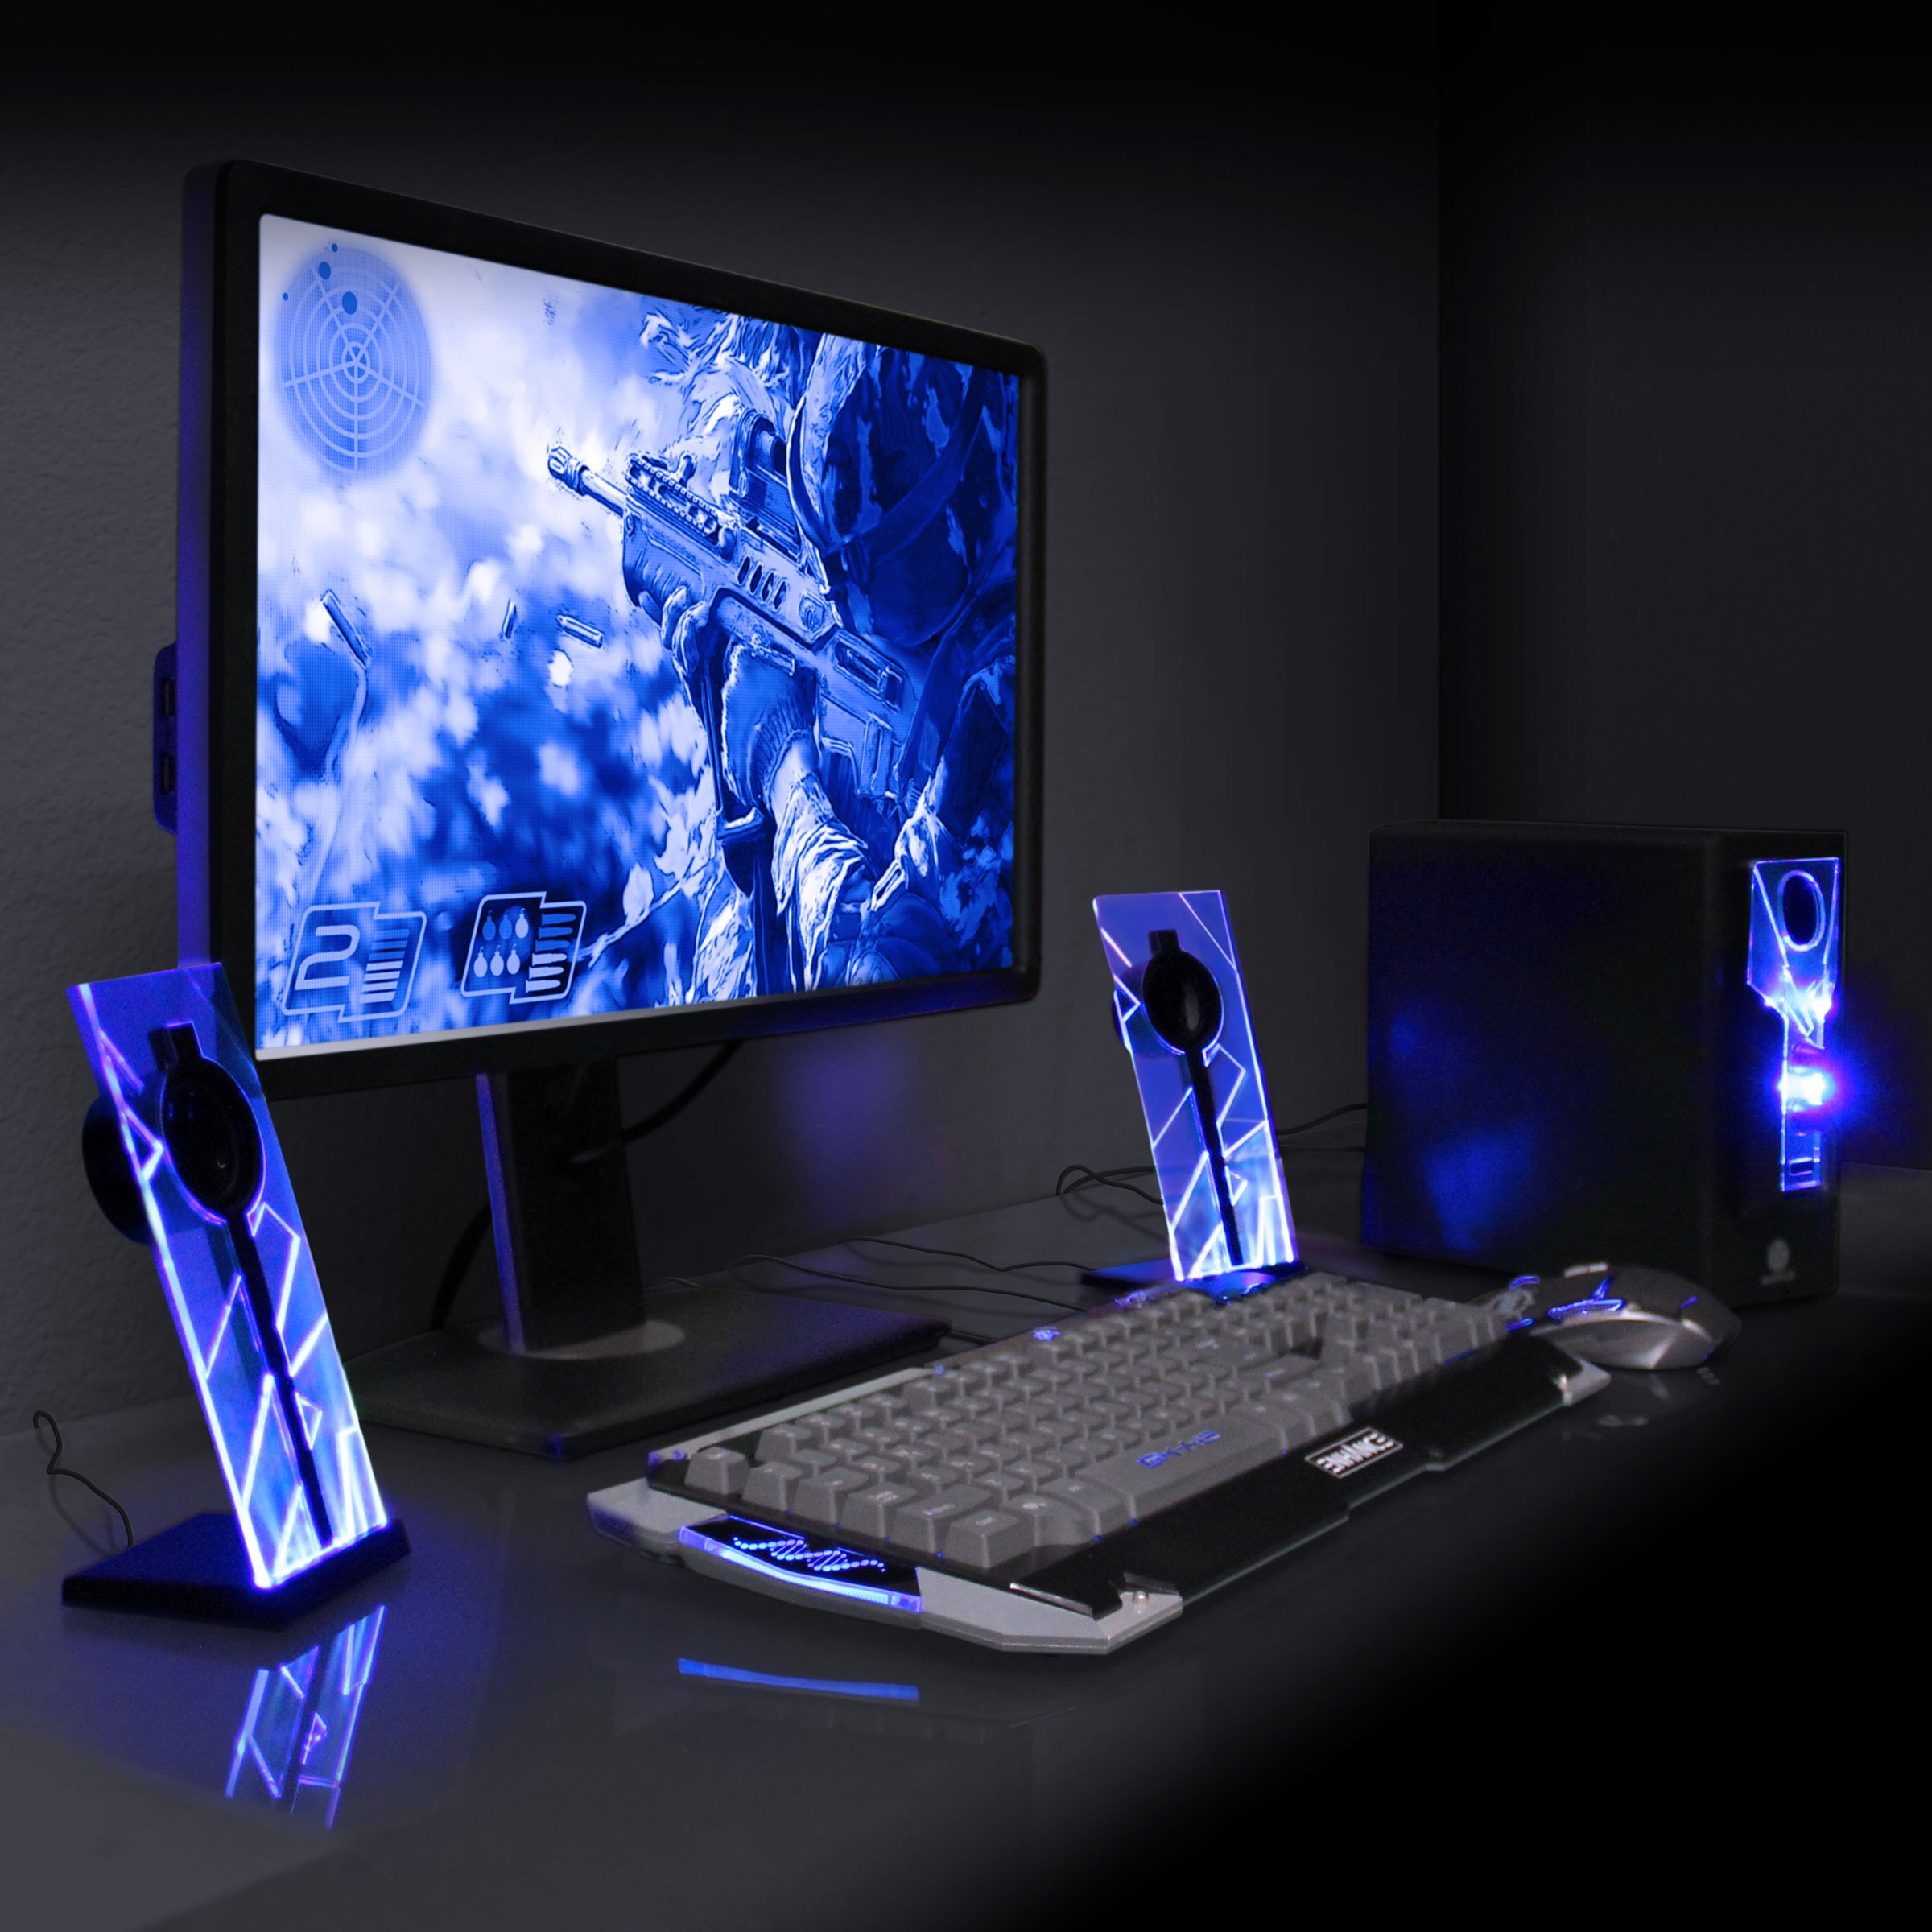 GOgroove BassPULSE 2.1 Computer Speakers with Blue LED Glow Lights and Powered Subwoofer - Gaming Speaker System for Music on Desktop, Laptop, PC with 40 Watts, Heavy Bass by GOgroove (Image #4)